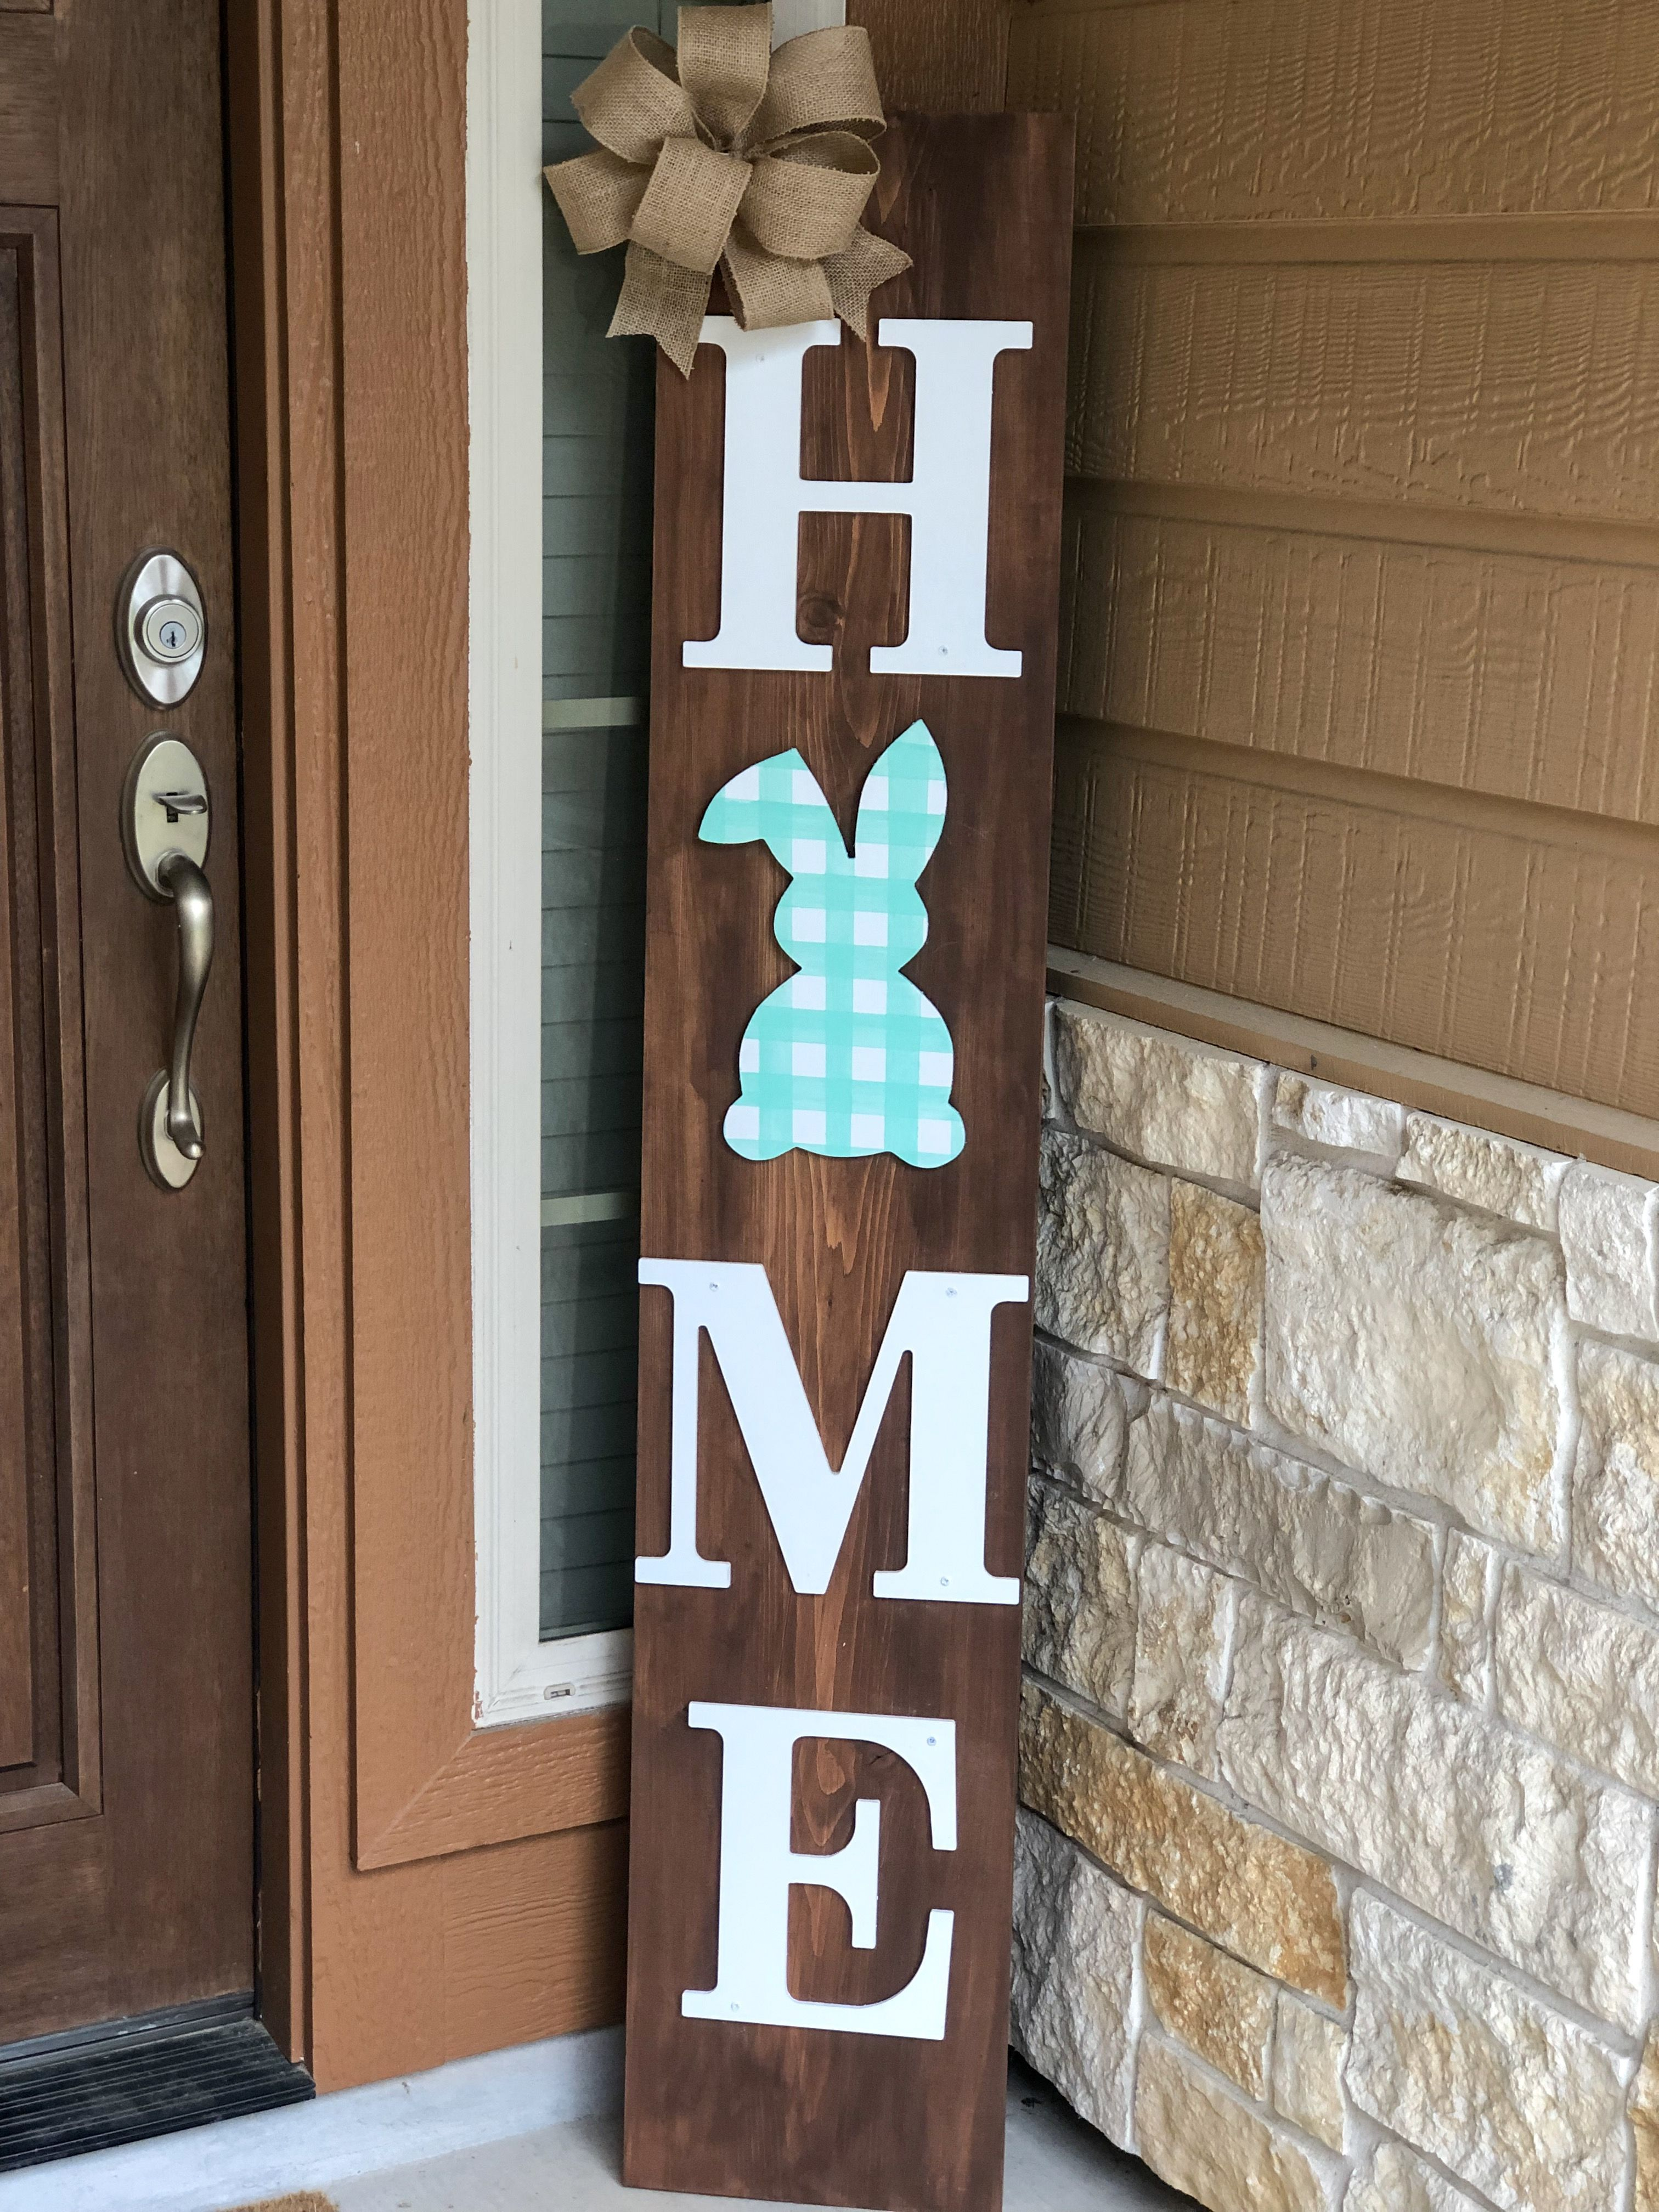 5 Ft Y All Interchangeable Home Sign Topped With A Burlap Bow Stained With White Letters Your P In 2020 Easter Wood Crafts Spring Easter Decor Spring Easter Crafts